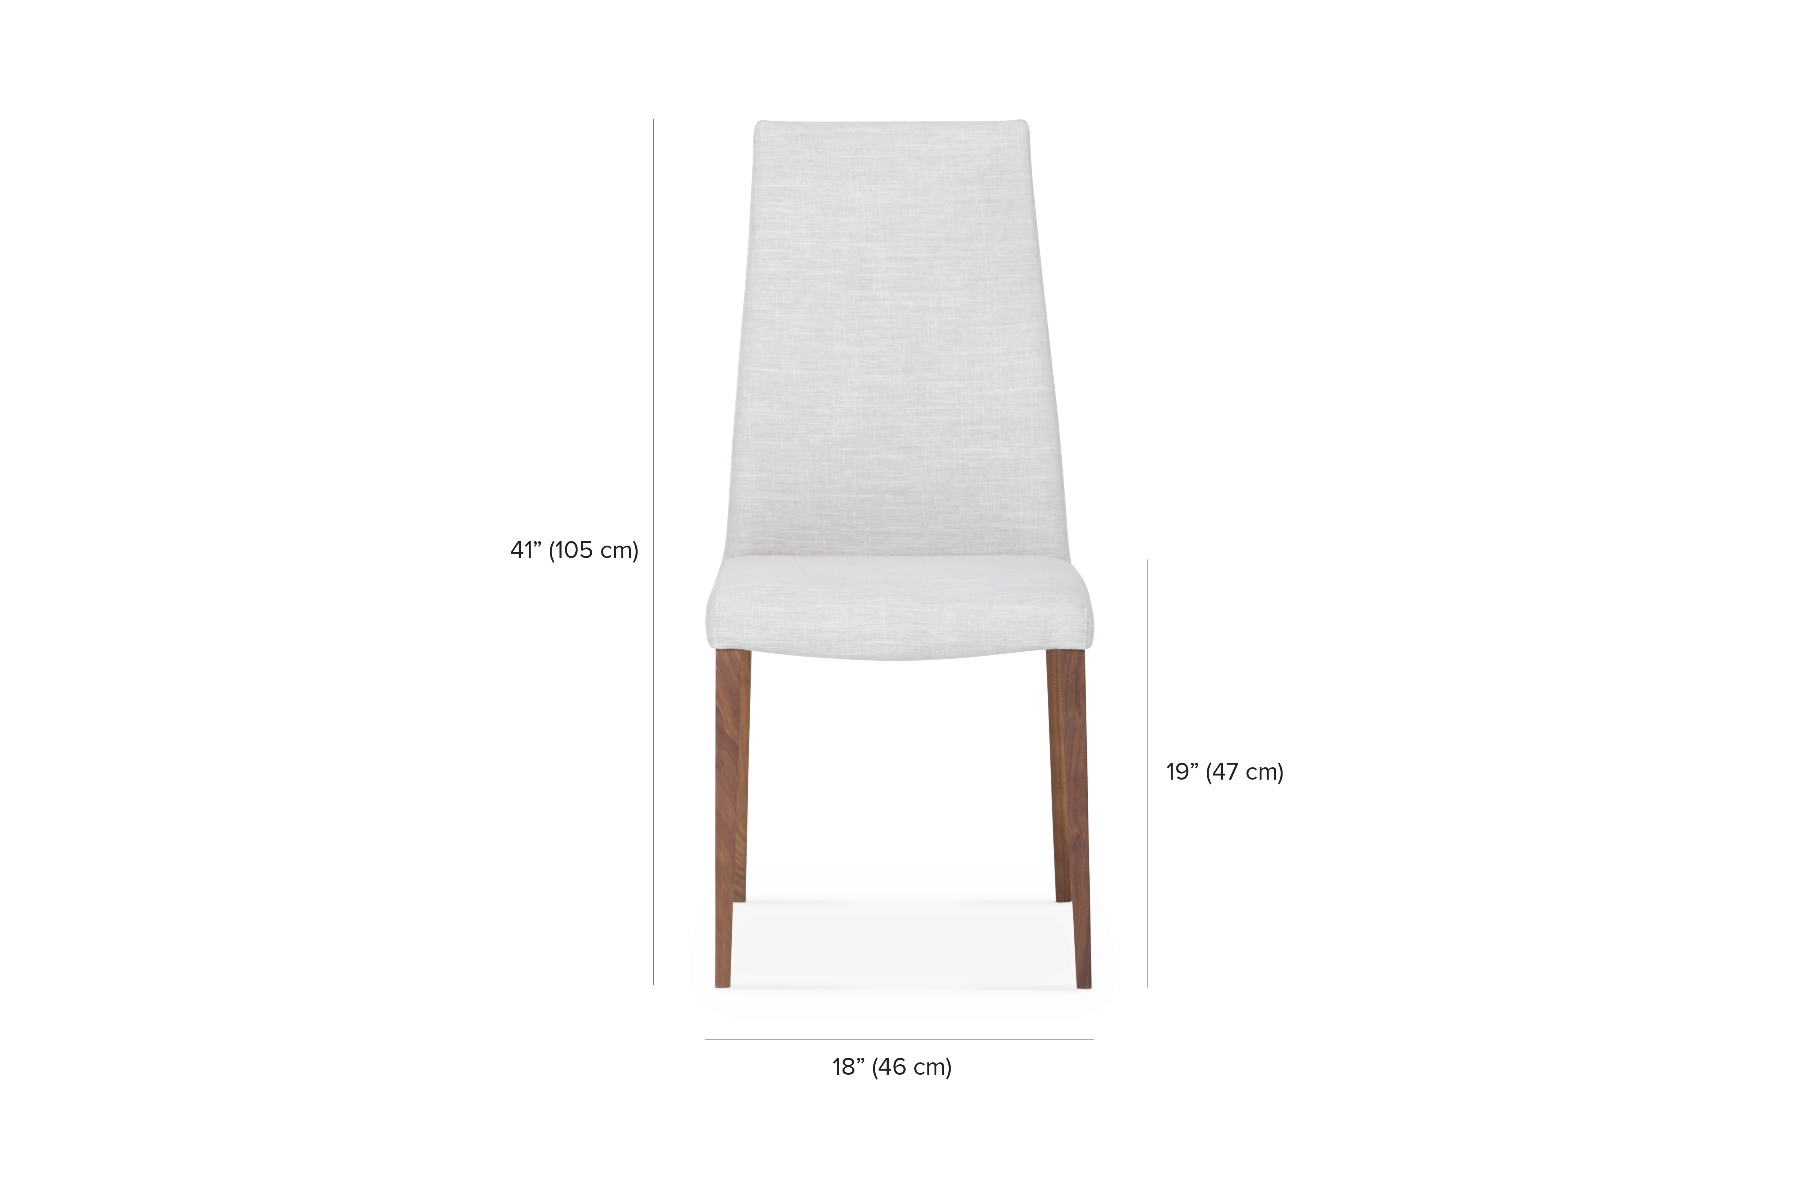 Marvelous Dali High Backrest Dining Chair Maison Corbeil Andrewgaddart Wooden Chair Designs For Living Room Andrewgaddartcom